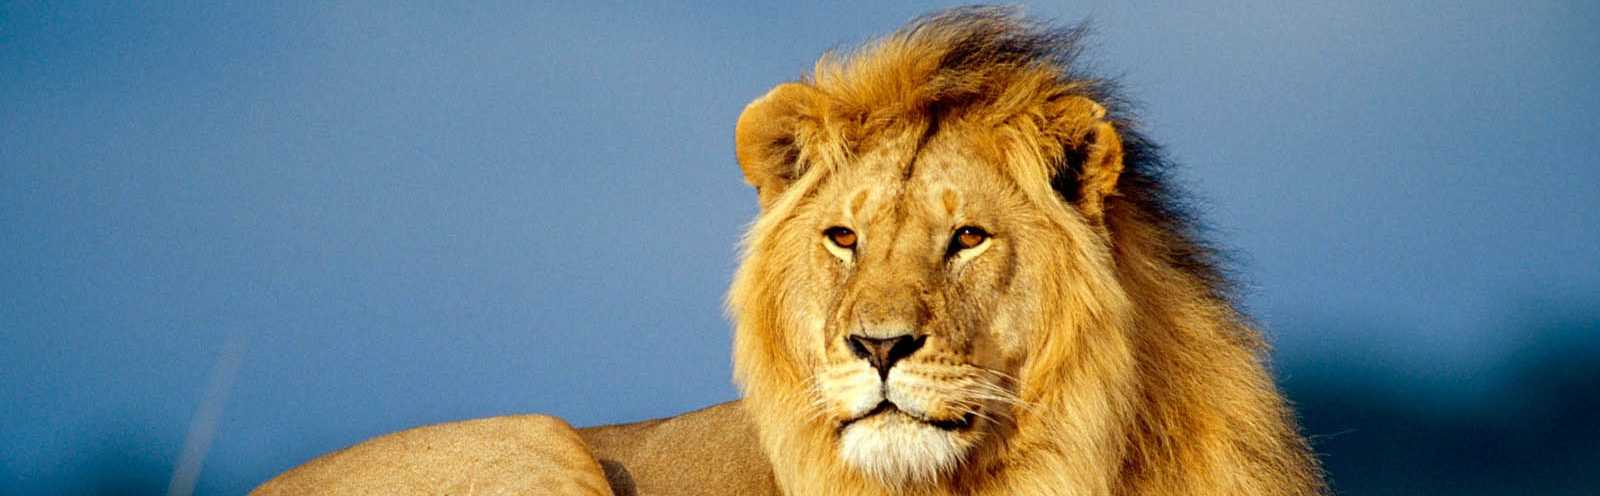 cropped-Male-Lion-Wallpapers-1-1.jpg